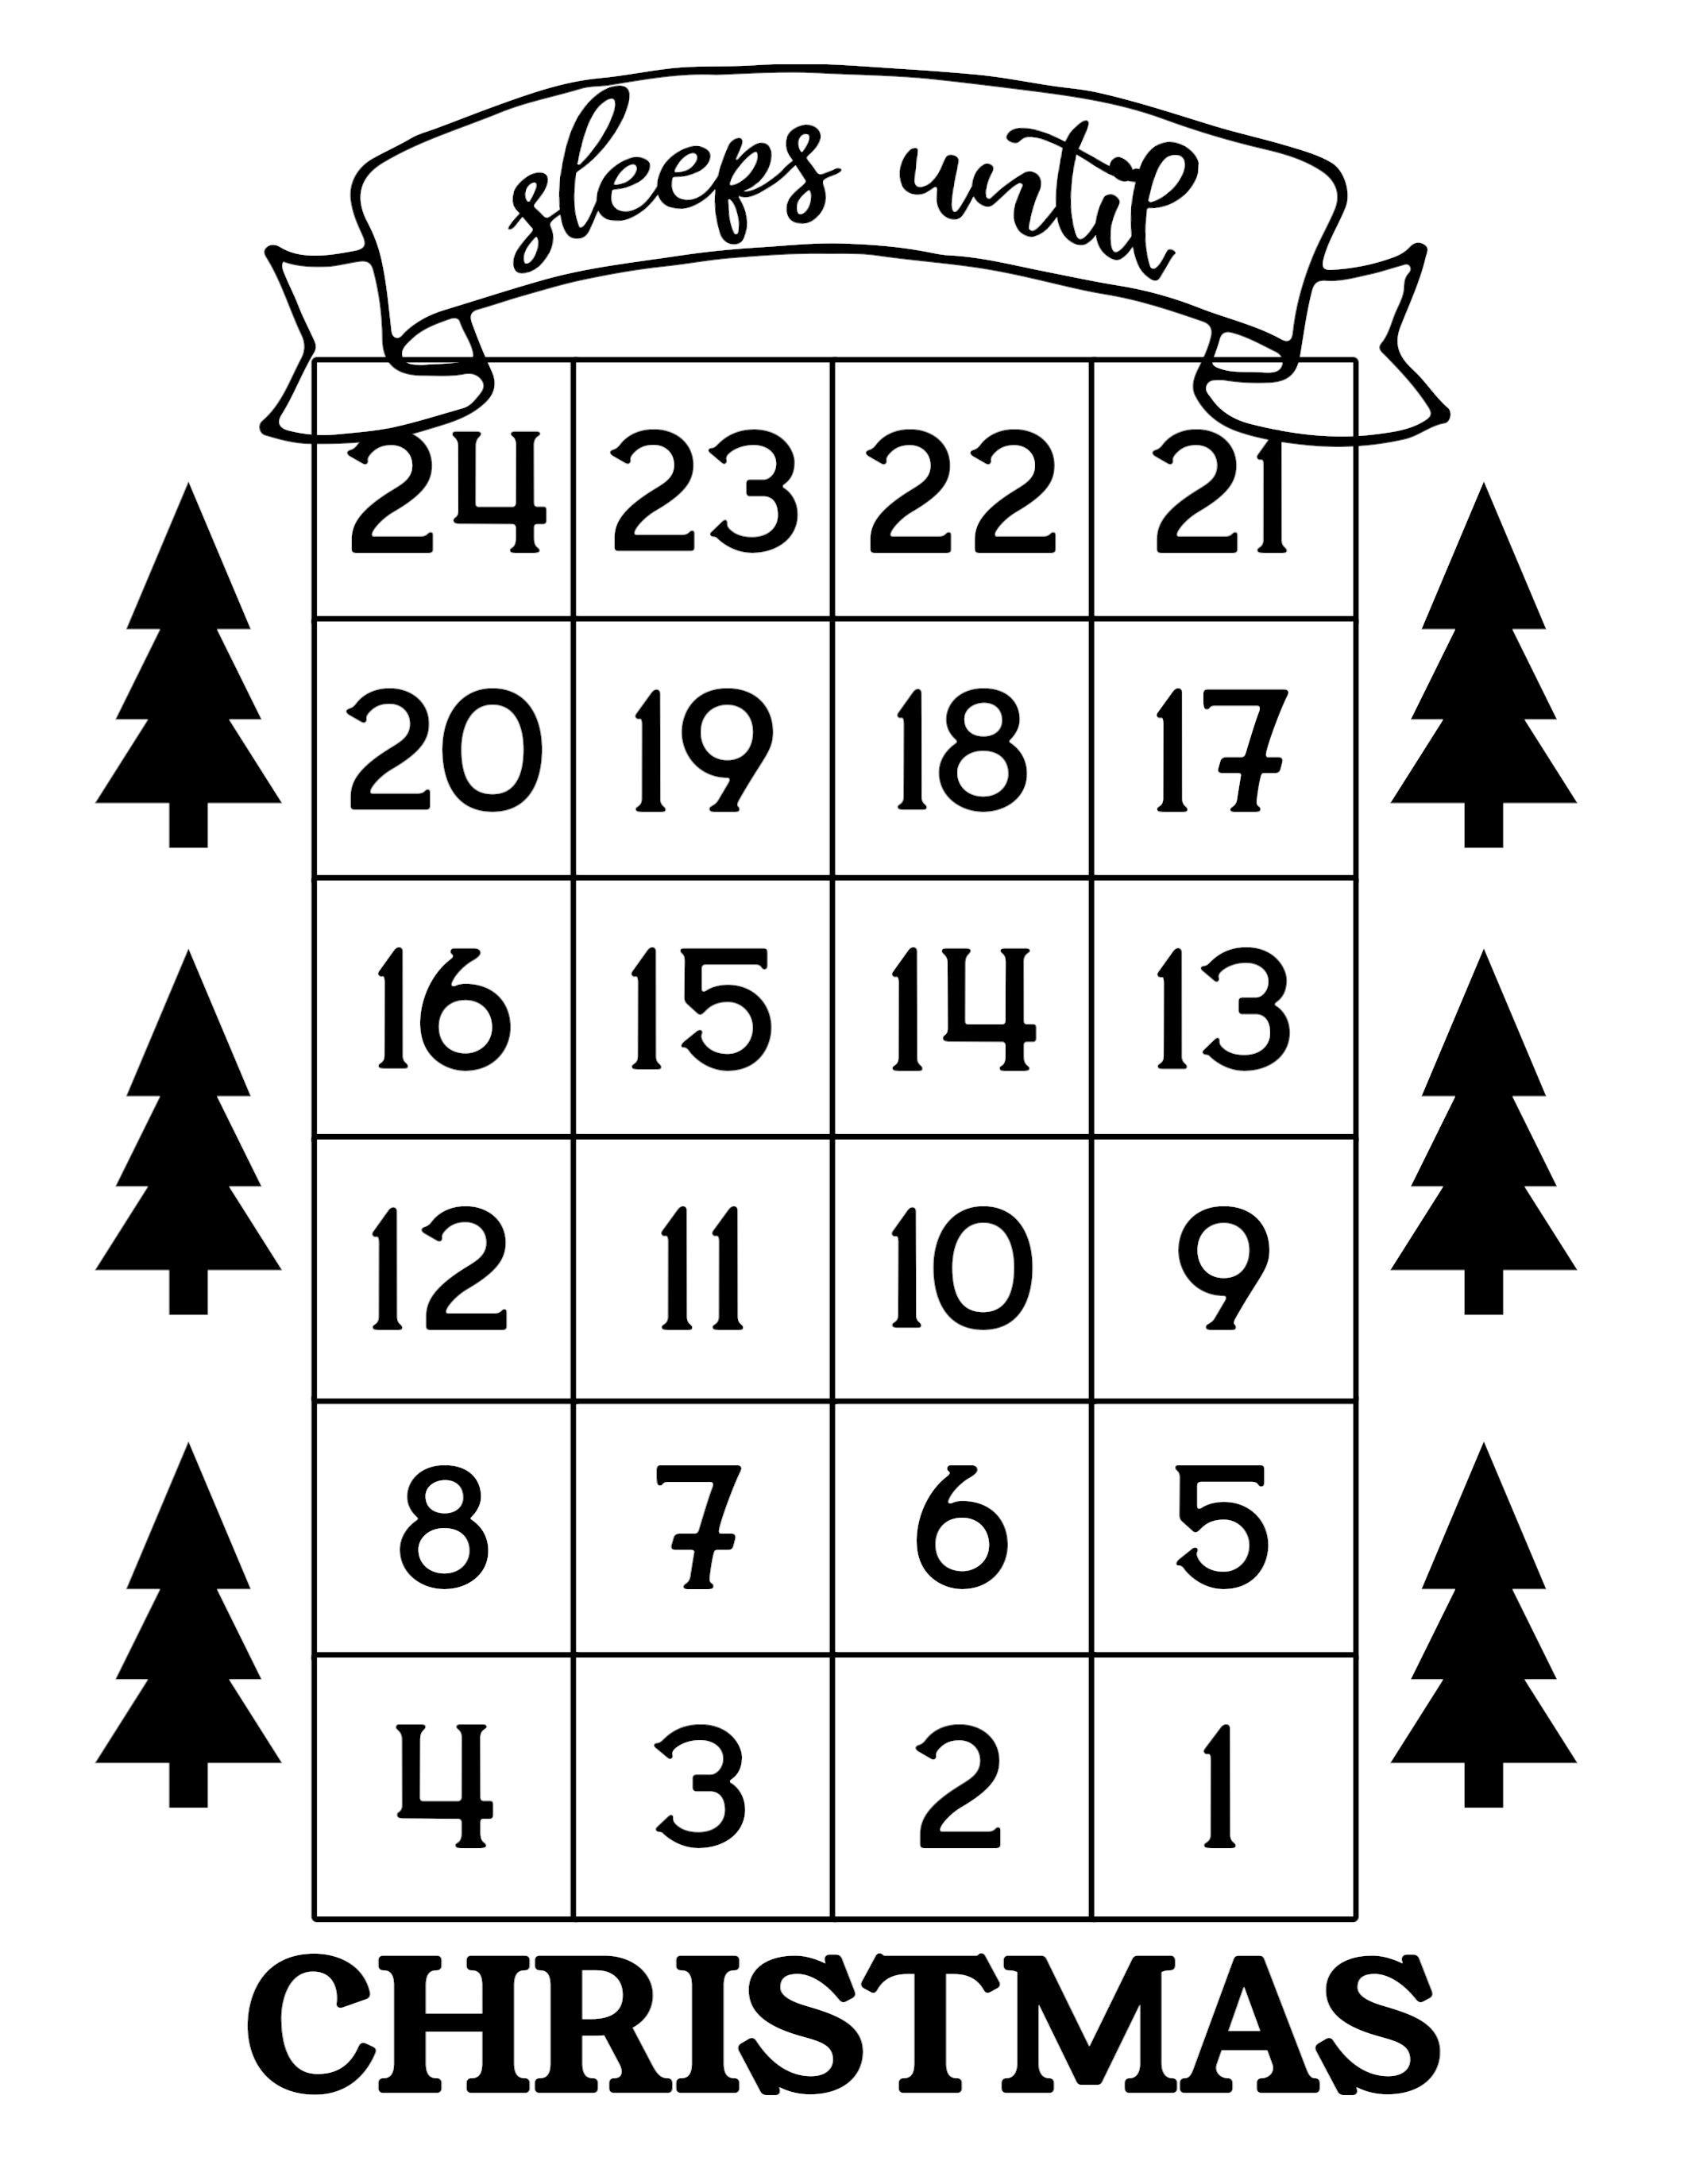 Click the following links to print the how many days until Christmas free printable